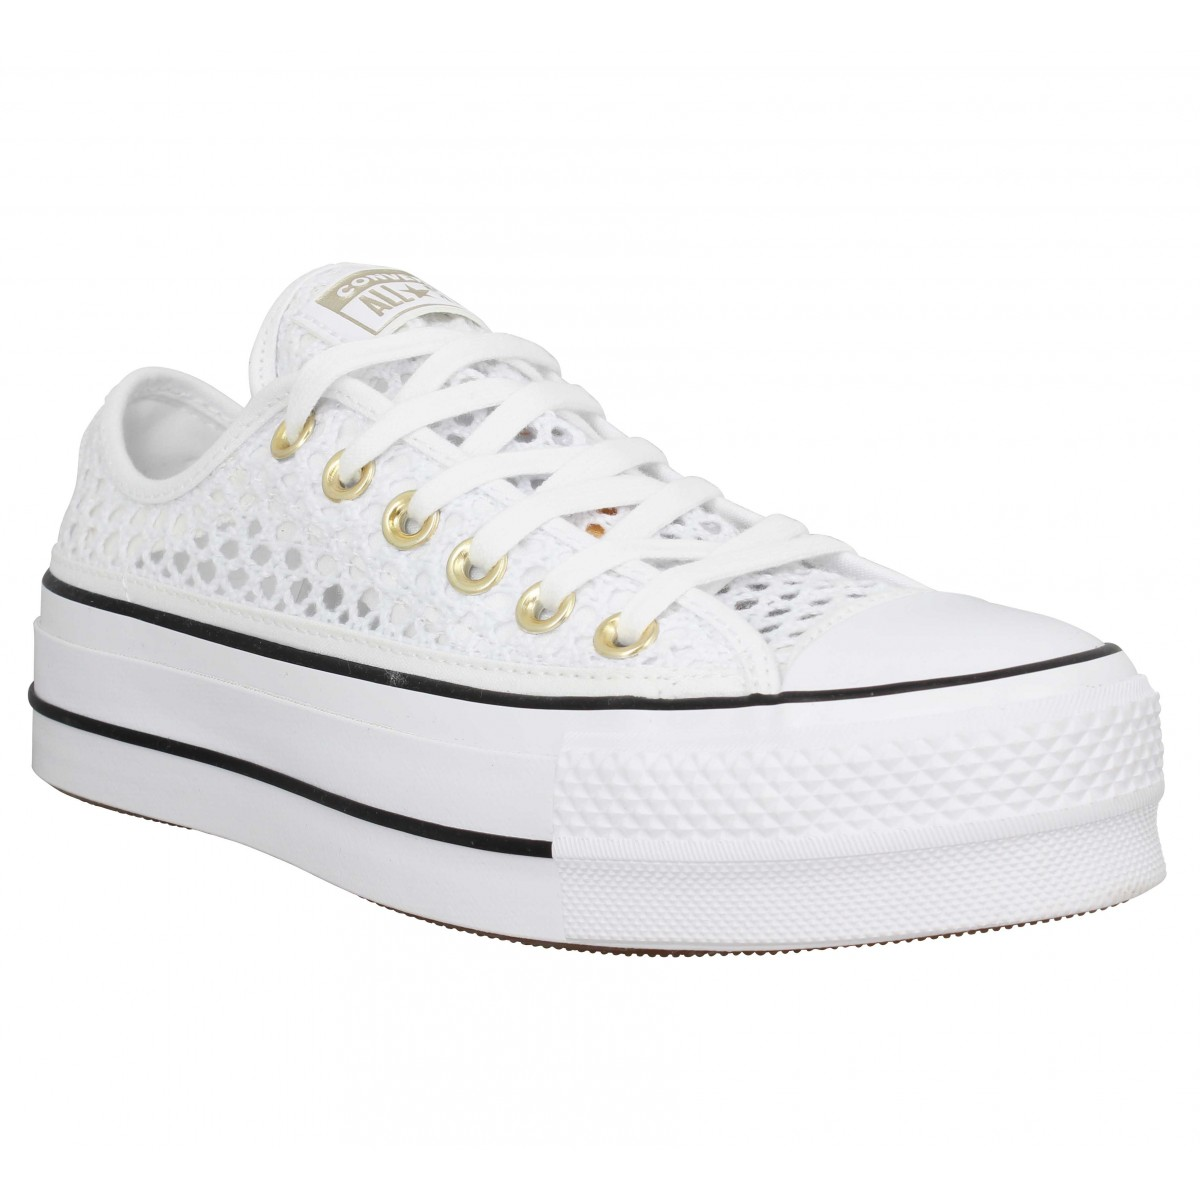 Baskets CONVERSE Chuck Taylor All Star Lift toile Femme Resille